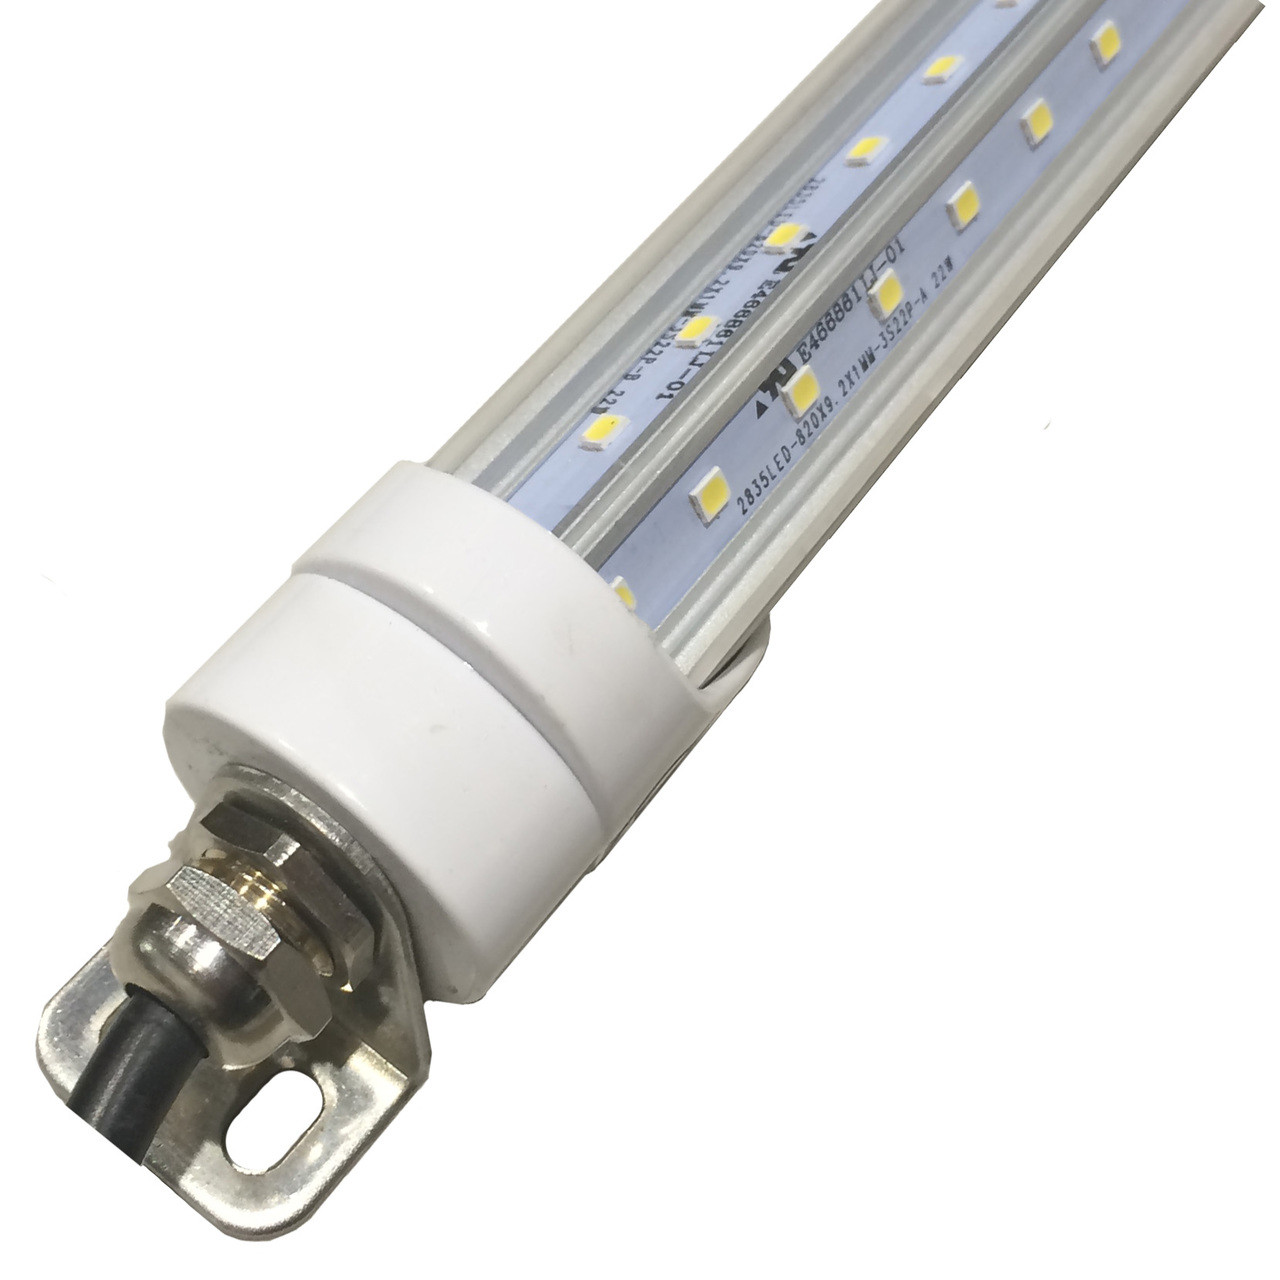 Led T8 T8 Led Freezer Cooler Six Foot Tube To Replace Florescent S